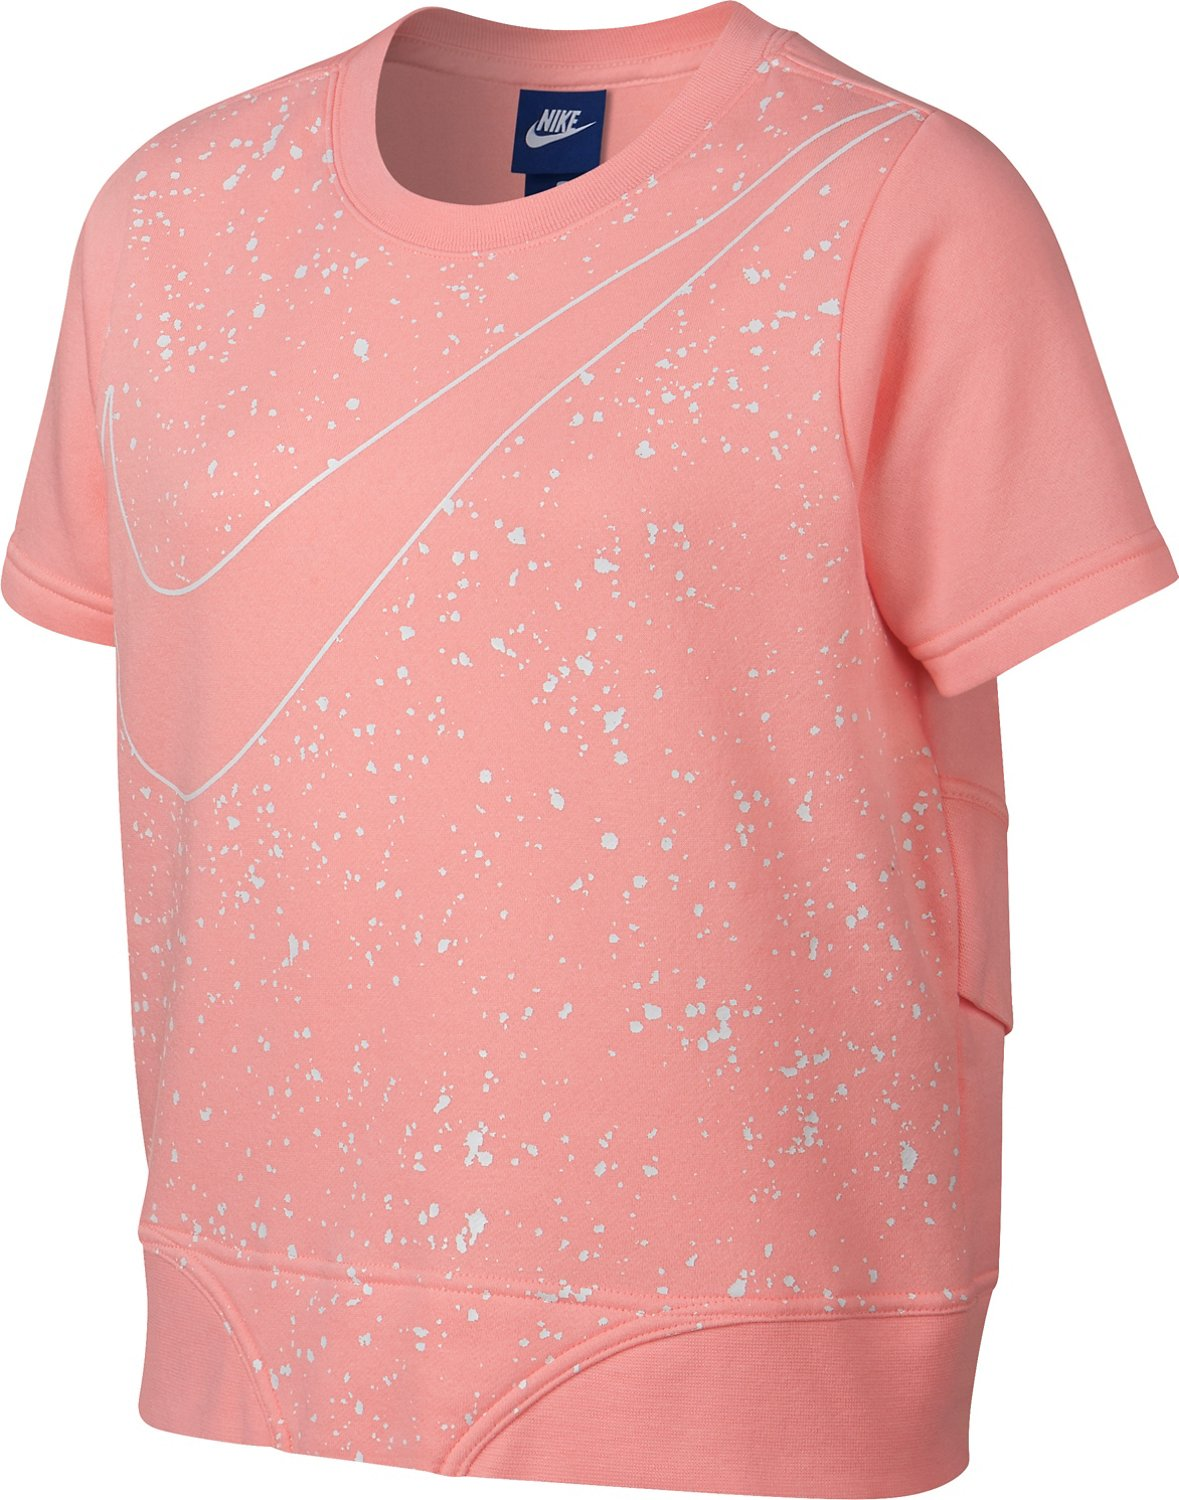 Display product reviews for Nike Girls' GFX Crew Top